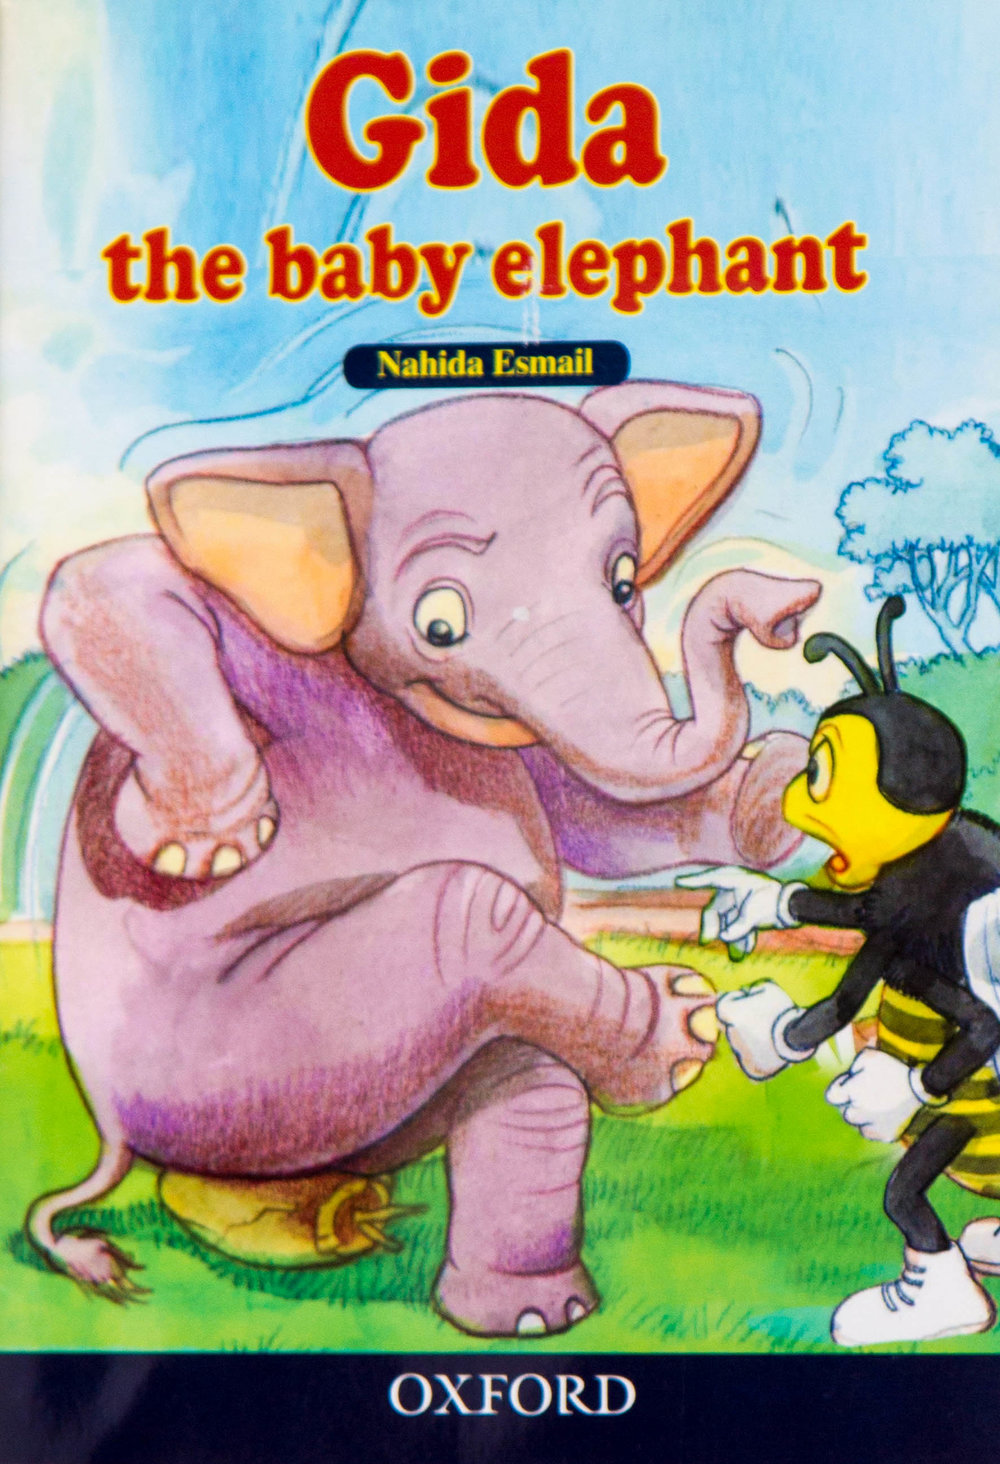 - Gida the baby elephant is for children aged 9 -11 years. It is a story about an elephant that is looking for water to quench its thirst.